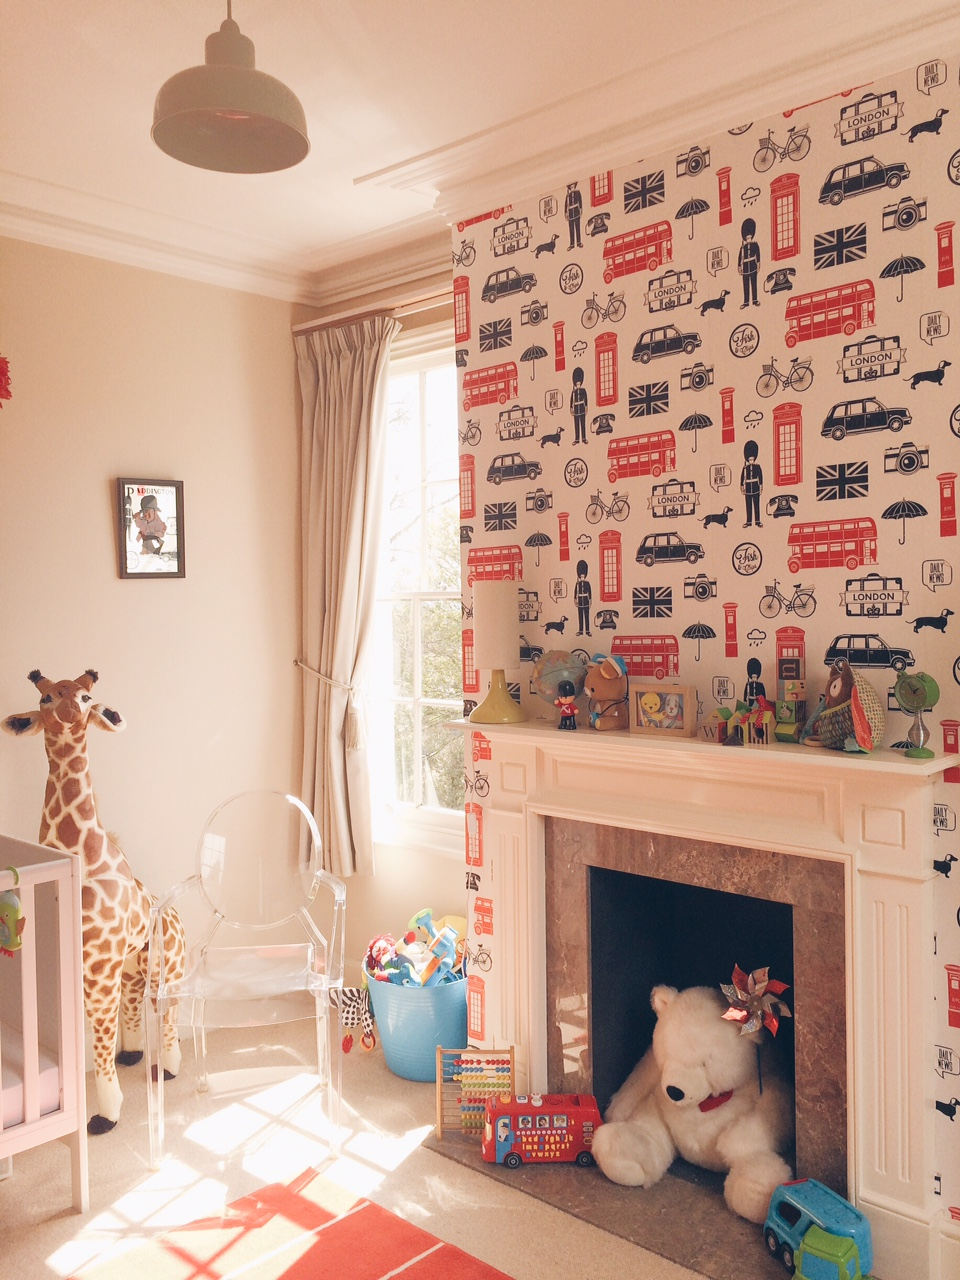 My son's nursery in our home.